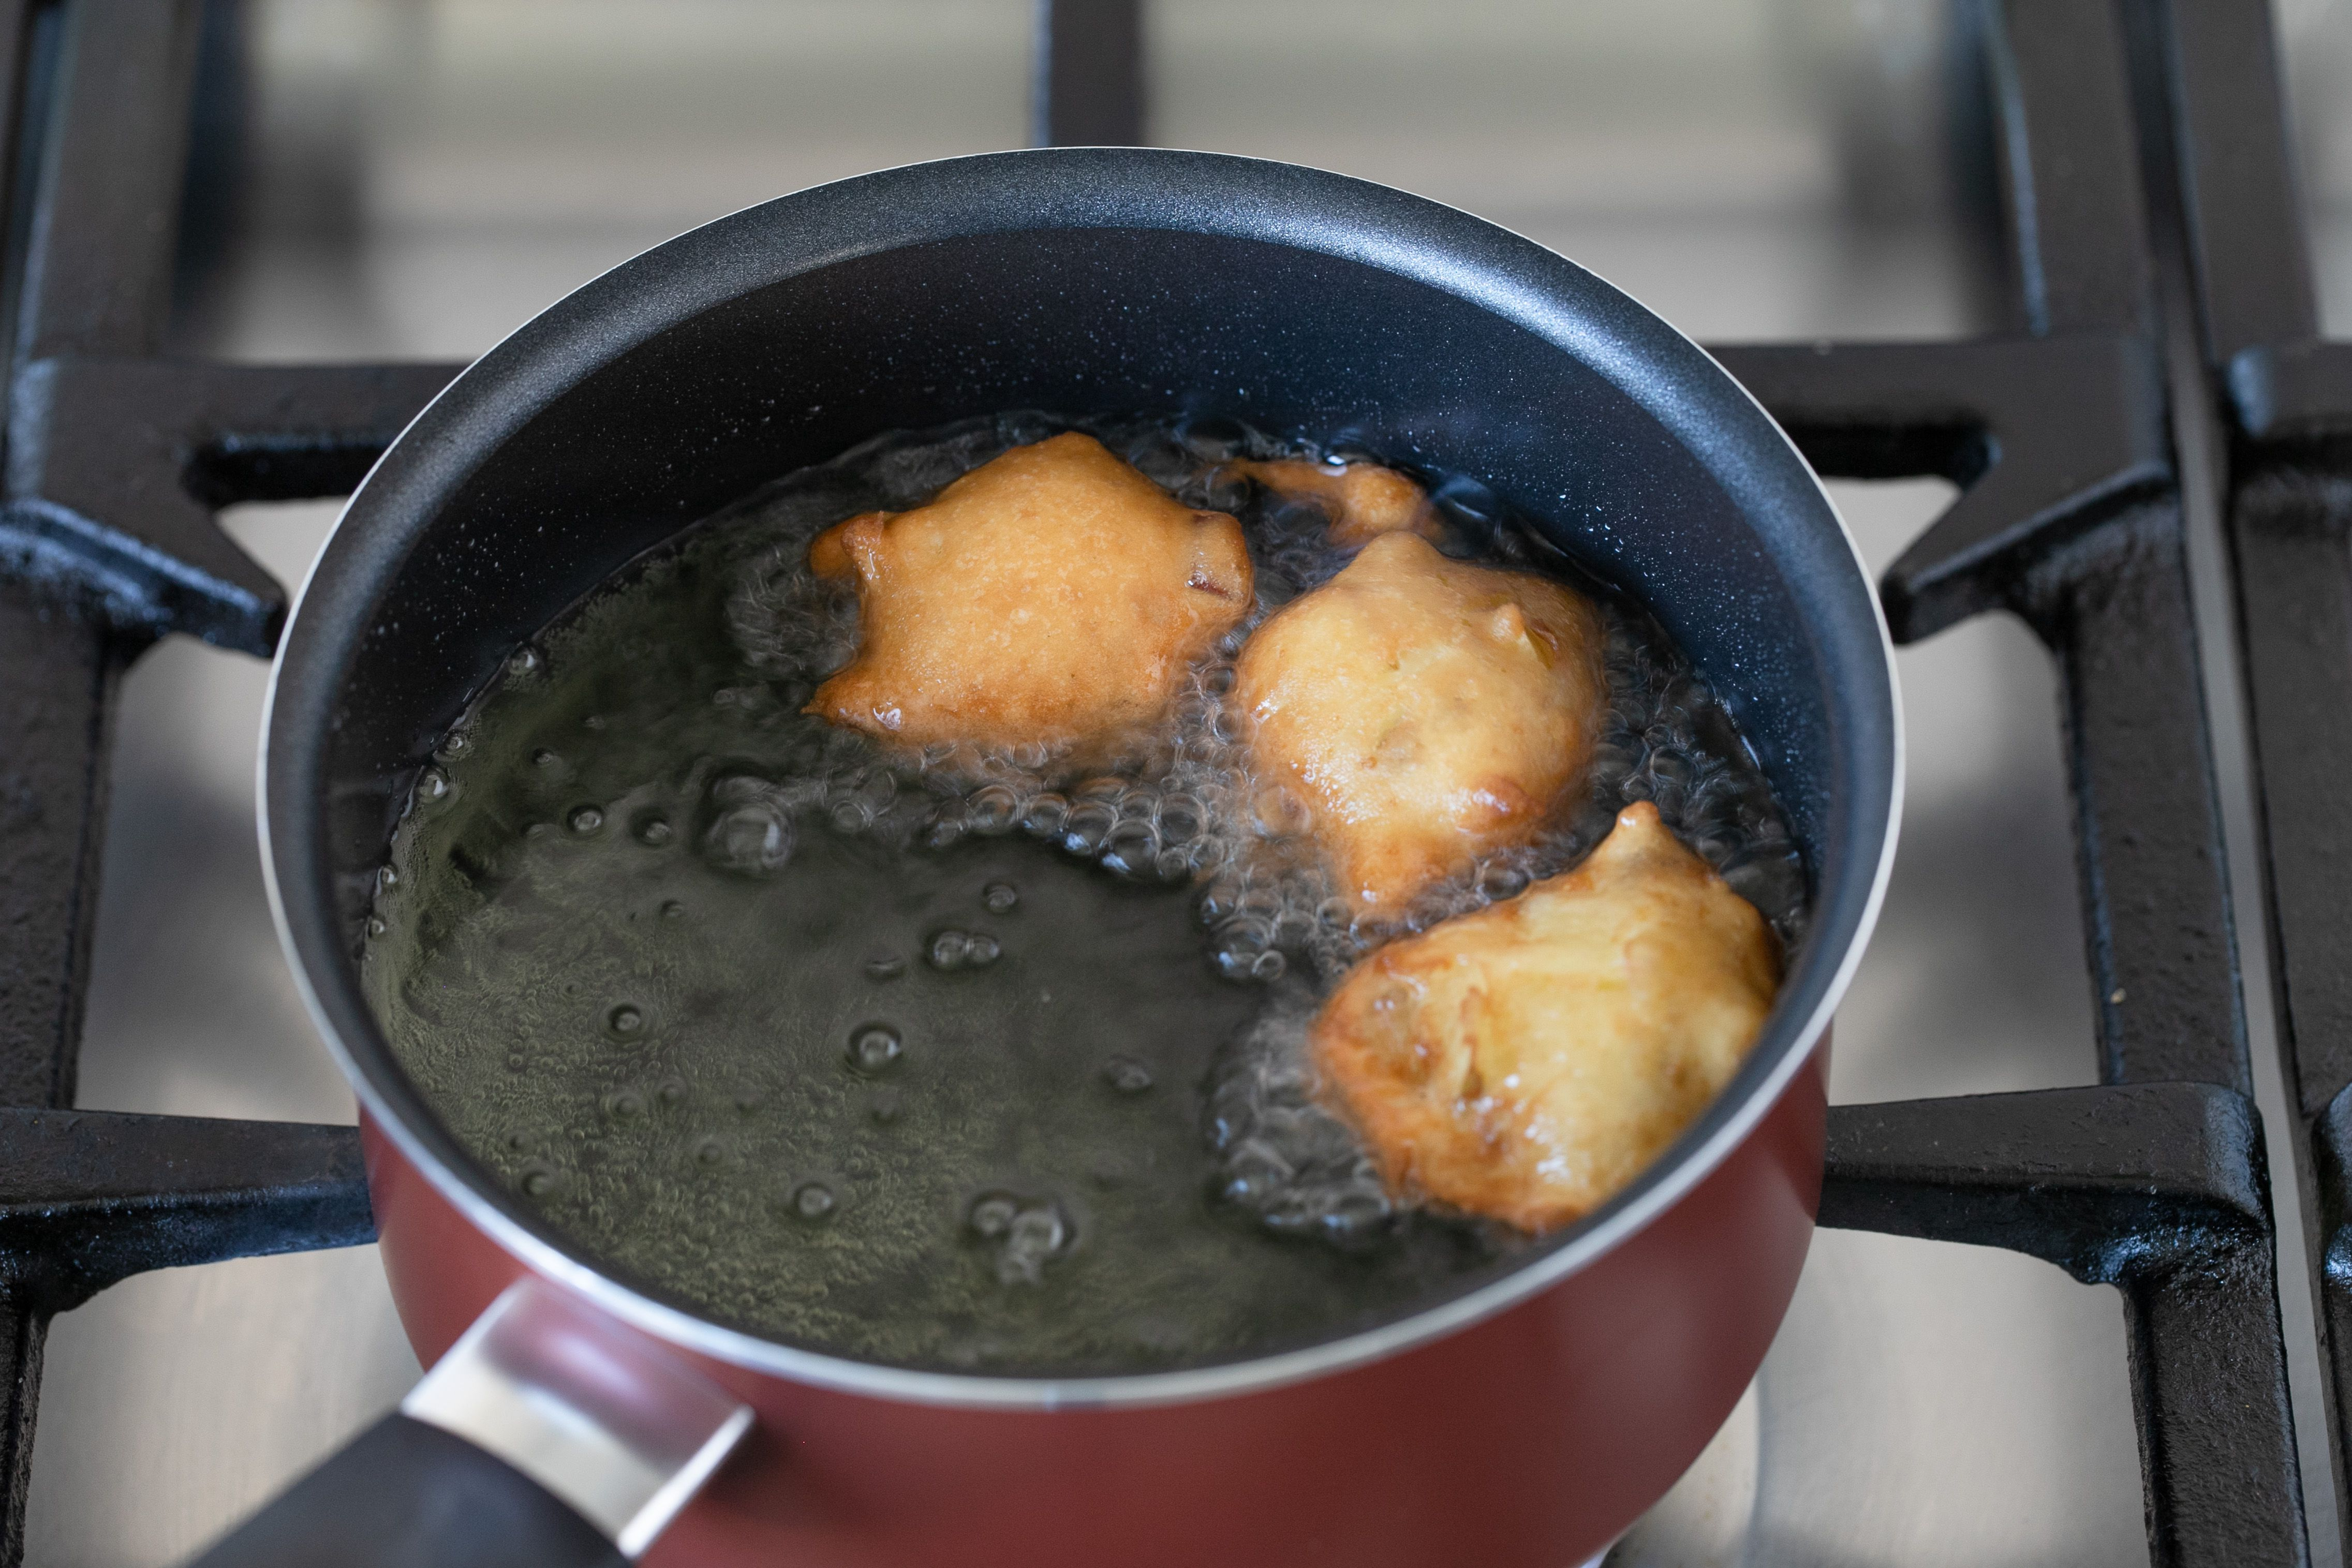 Drop fritters into oil